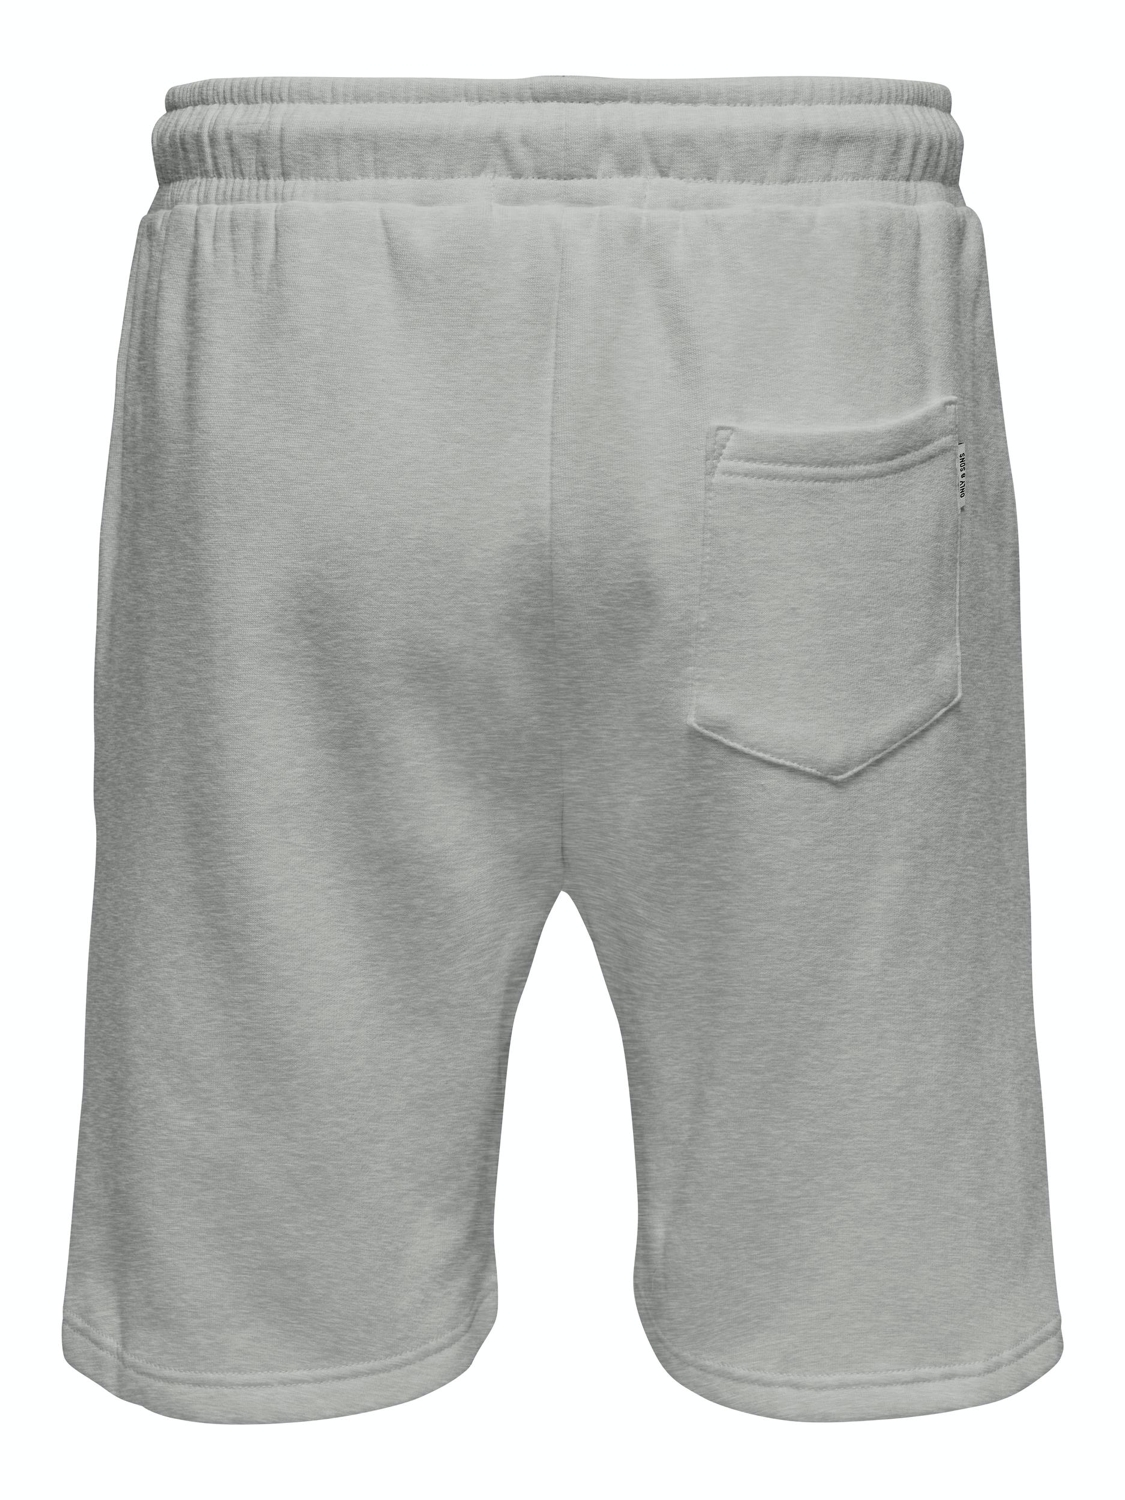 ONLY & SONS - ONSCERES SWEAT SHORTS GREY | Gate36 Hobro